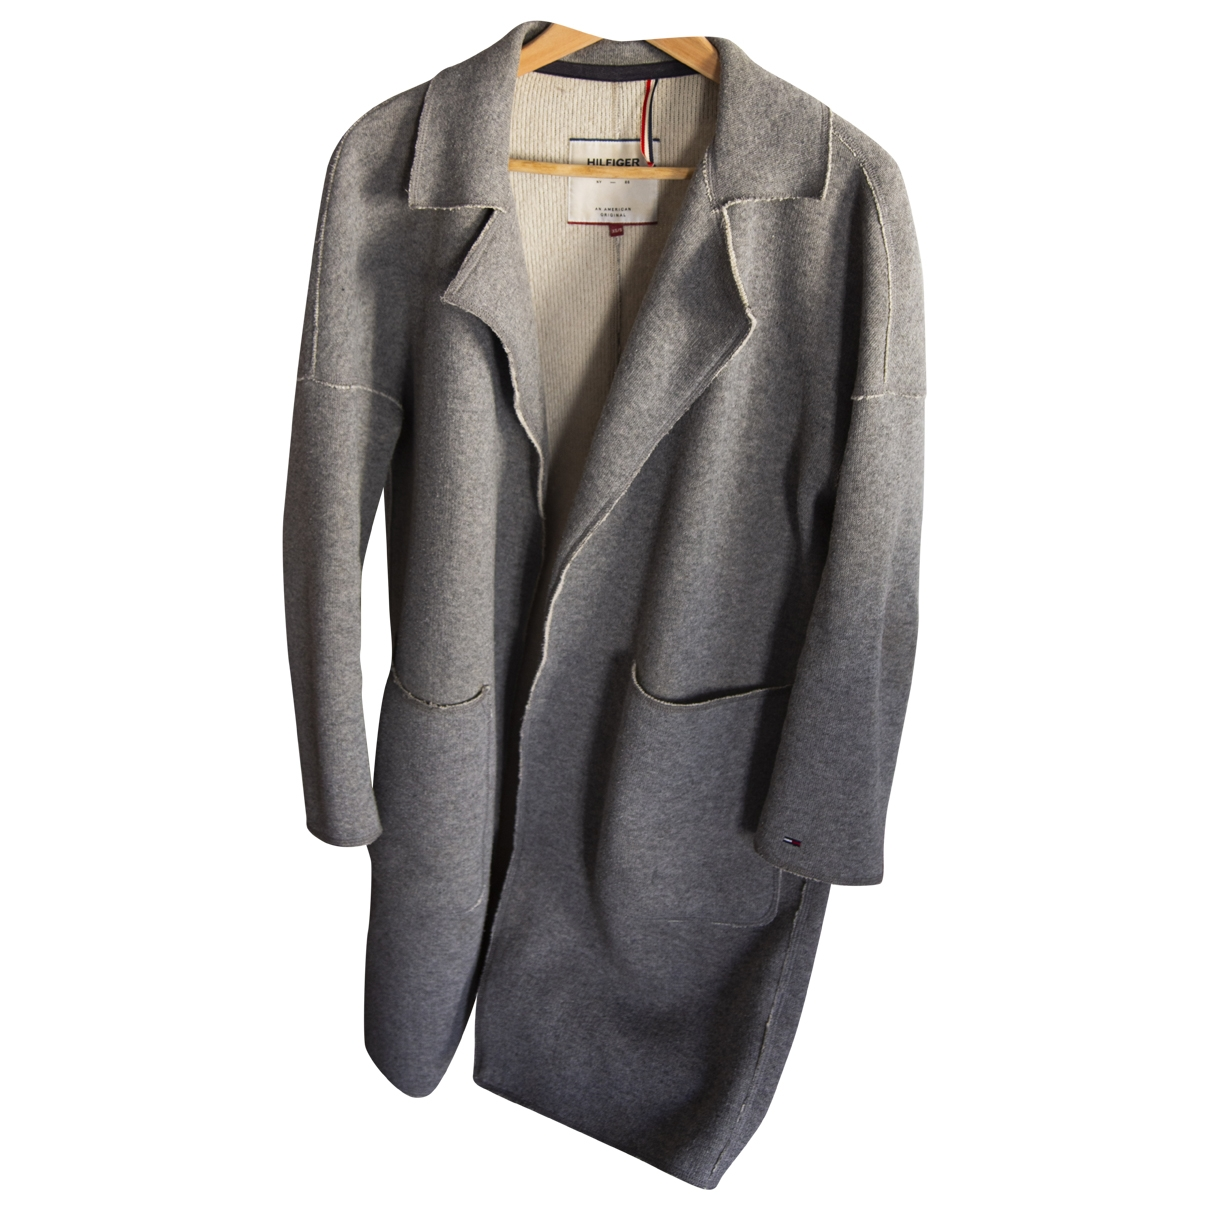 Tommy Hilfiger \N Grey Wool jacket for Women S International